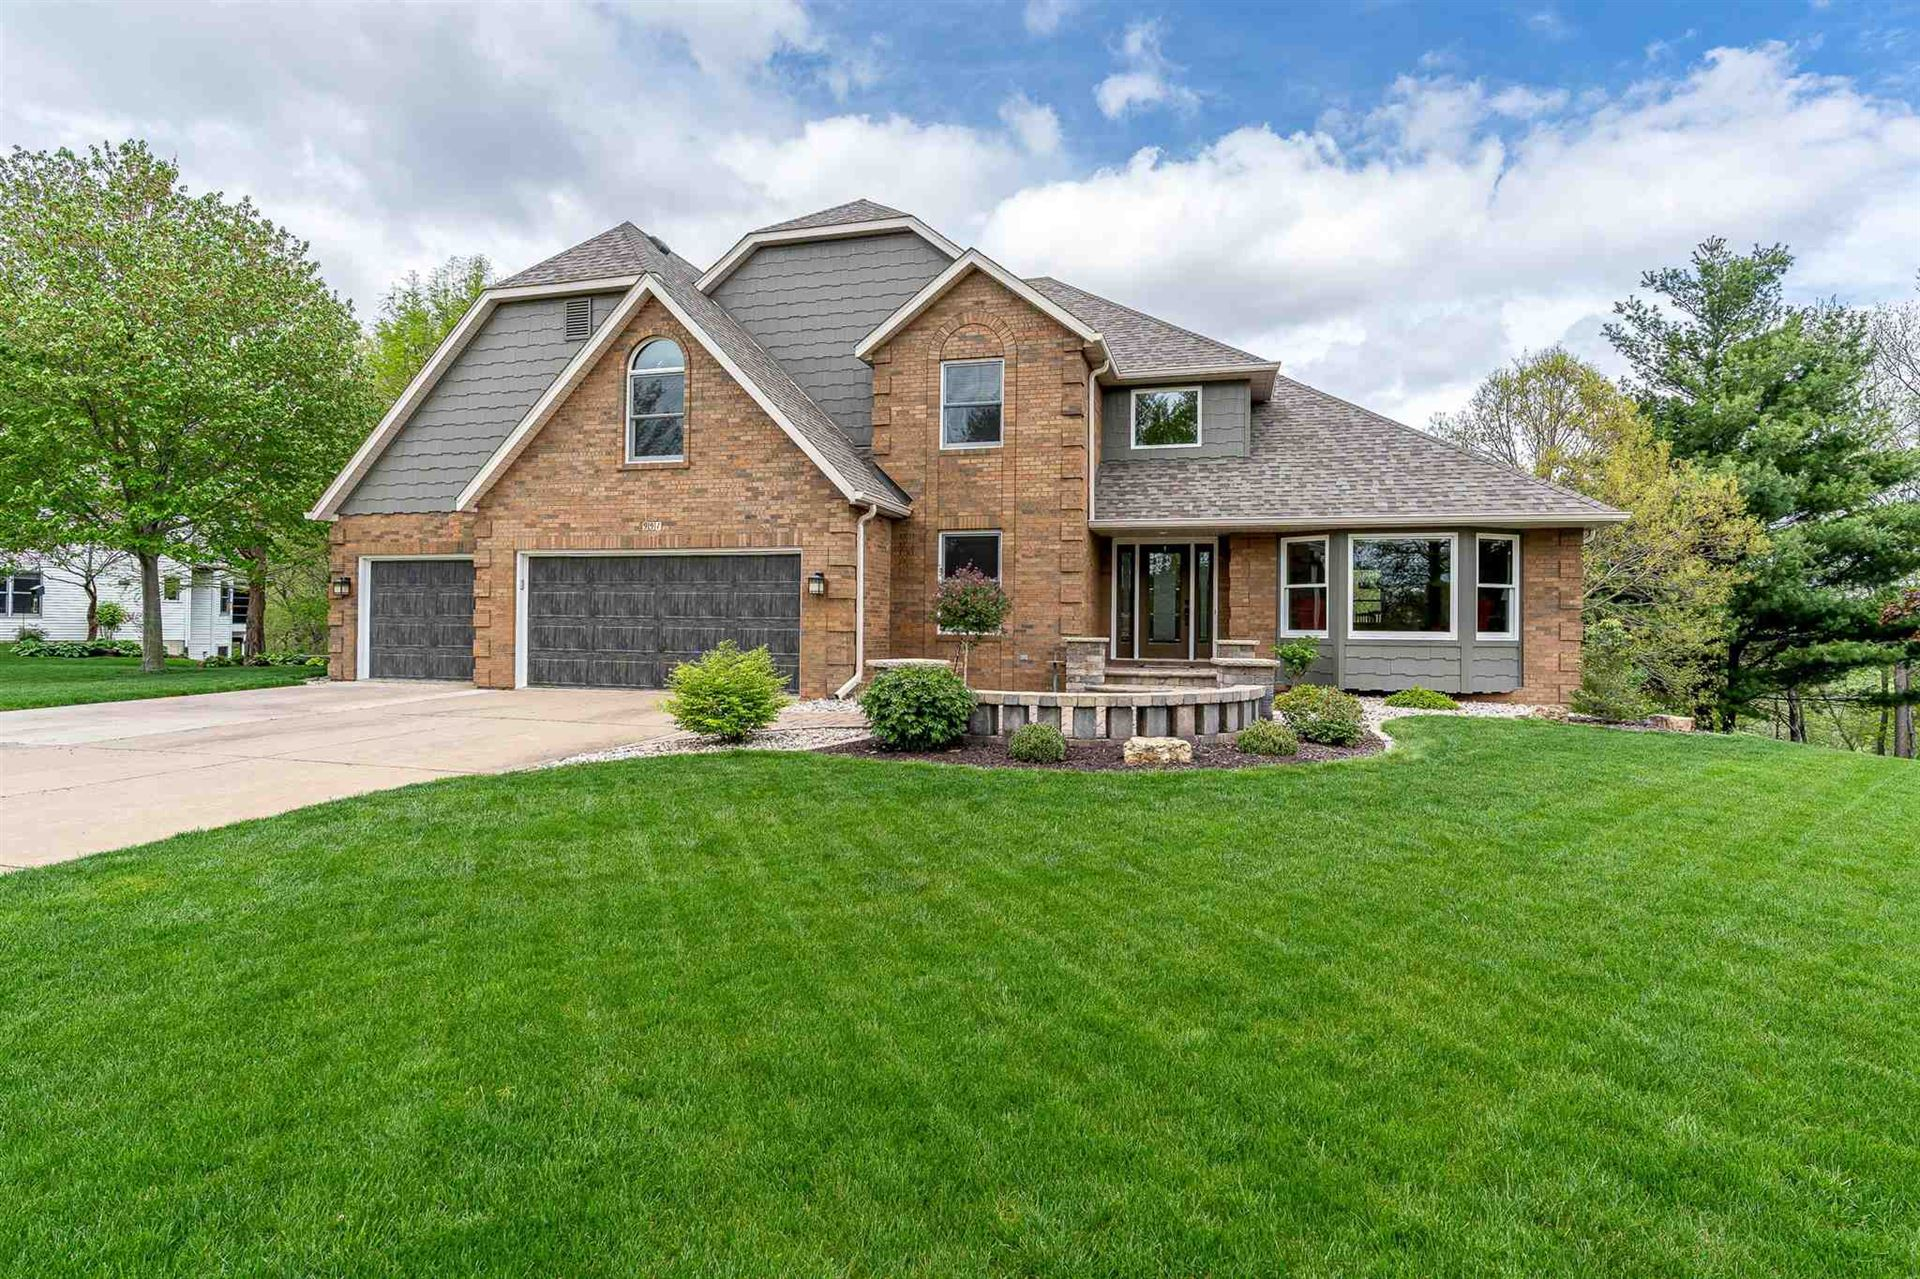 991 CARRIAGE PLACE Drive, Bettendorf, IA 52722 - MLS#: QC4221246